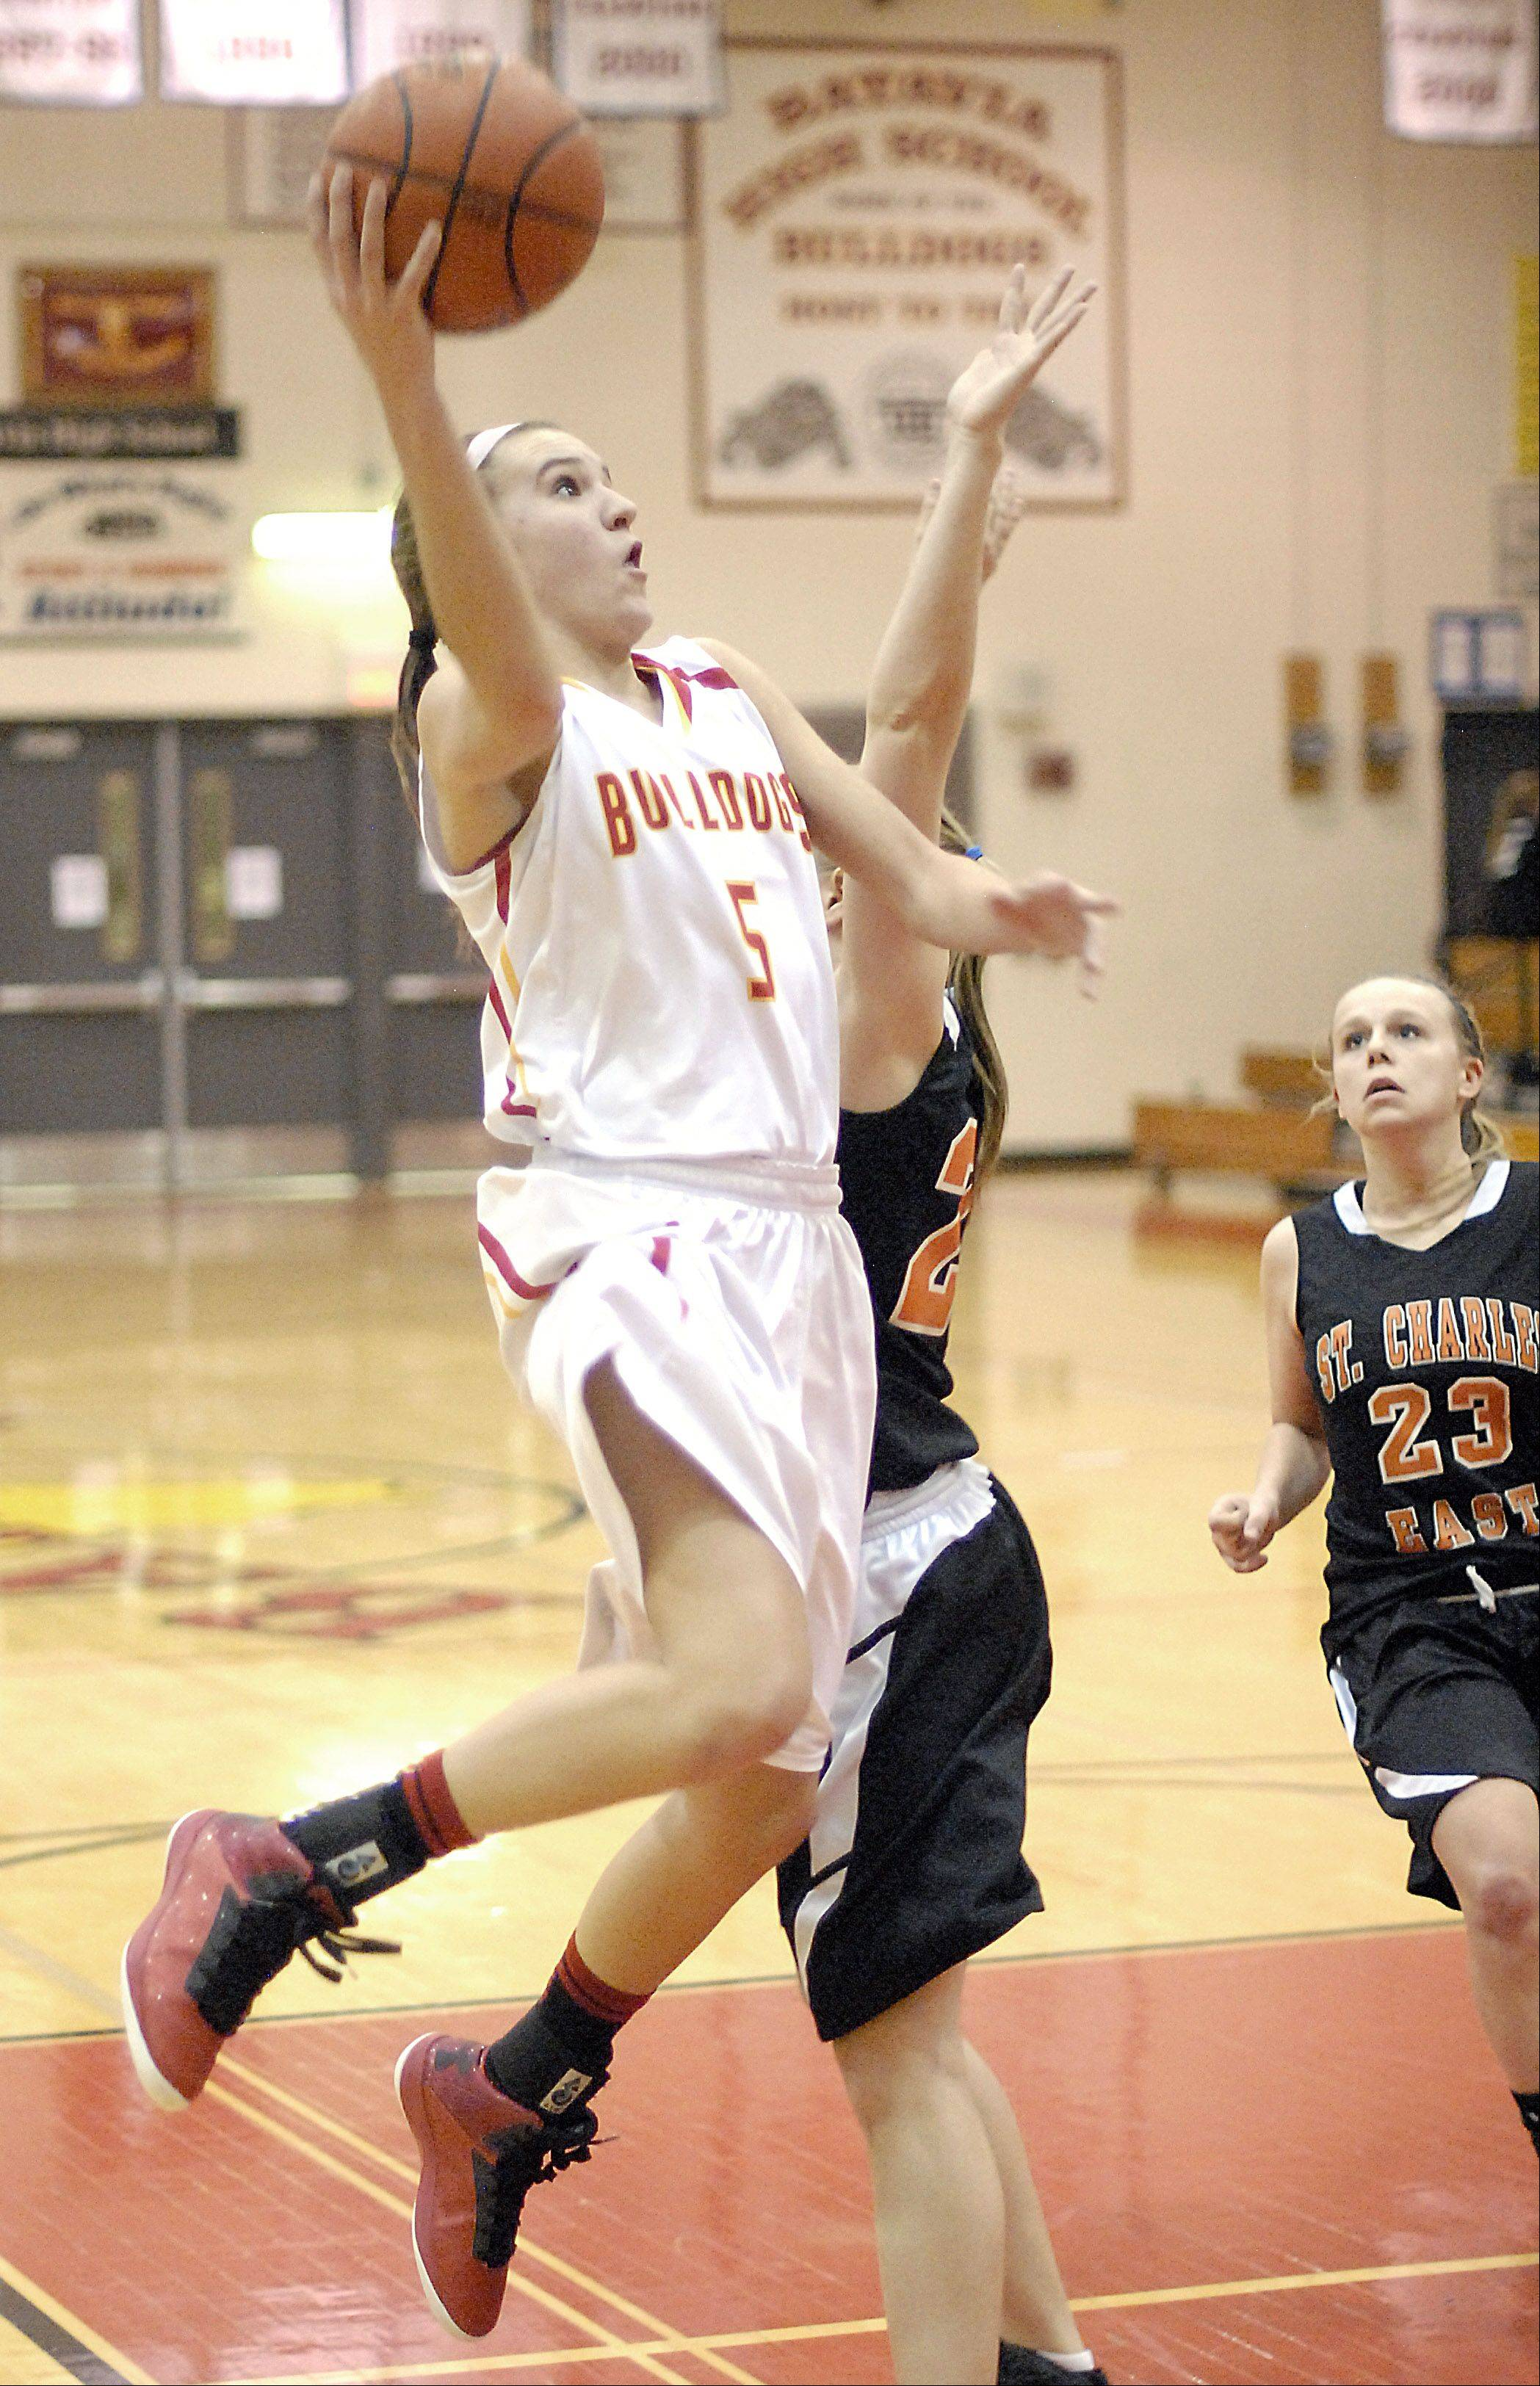 Liza Fruendt broke the Batavia scoring record Tuesday night against St. Charles East.